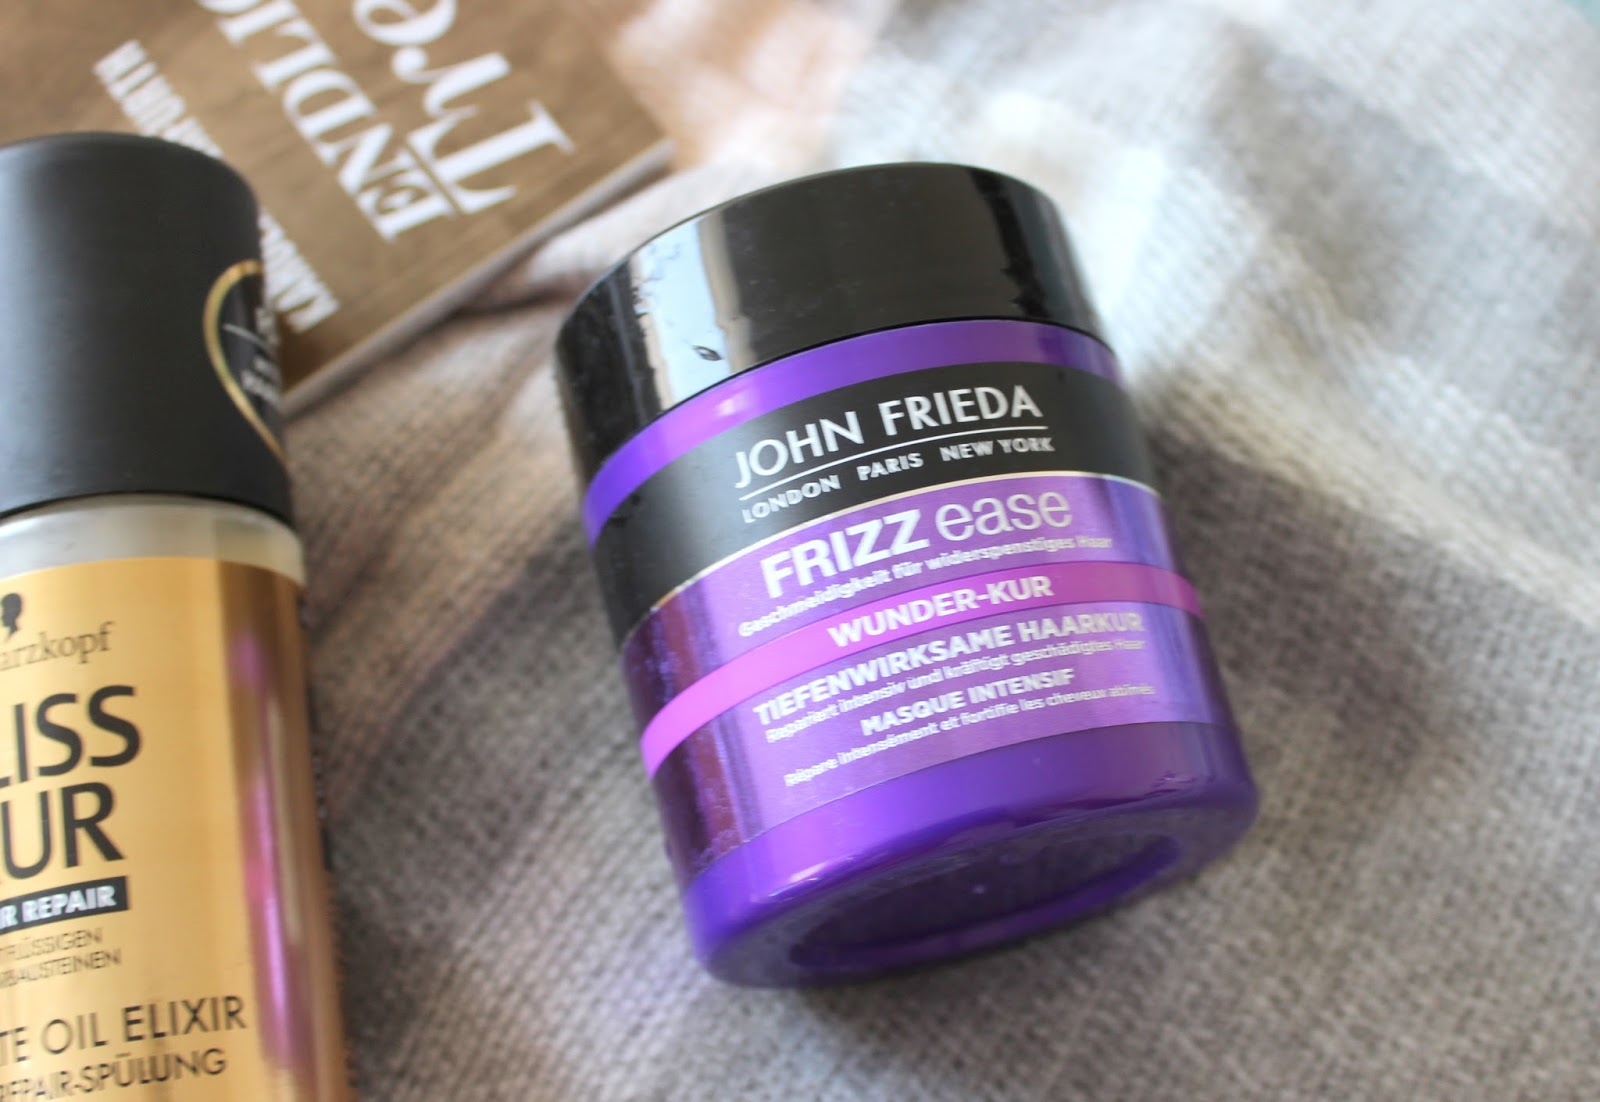 Wunderkur John Frieda dm review